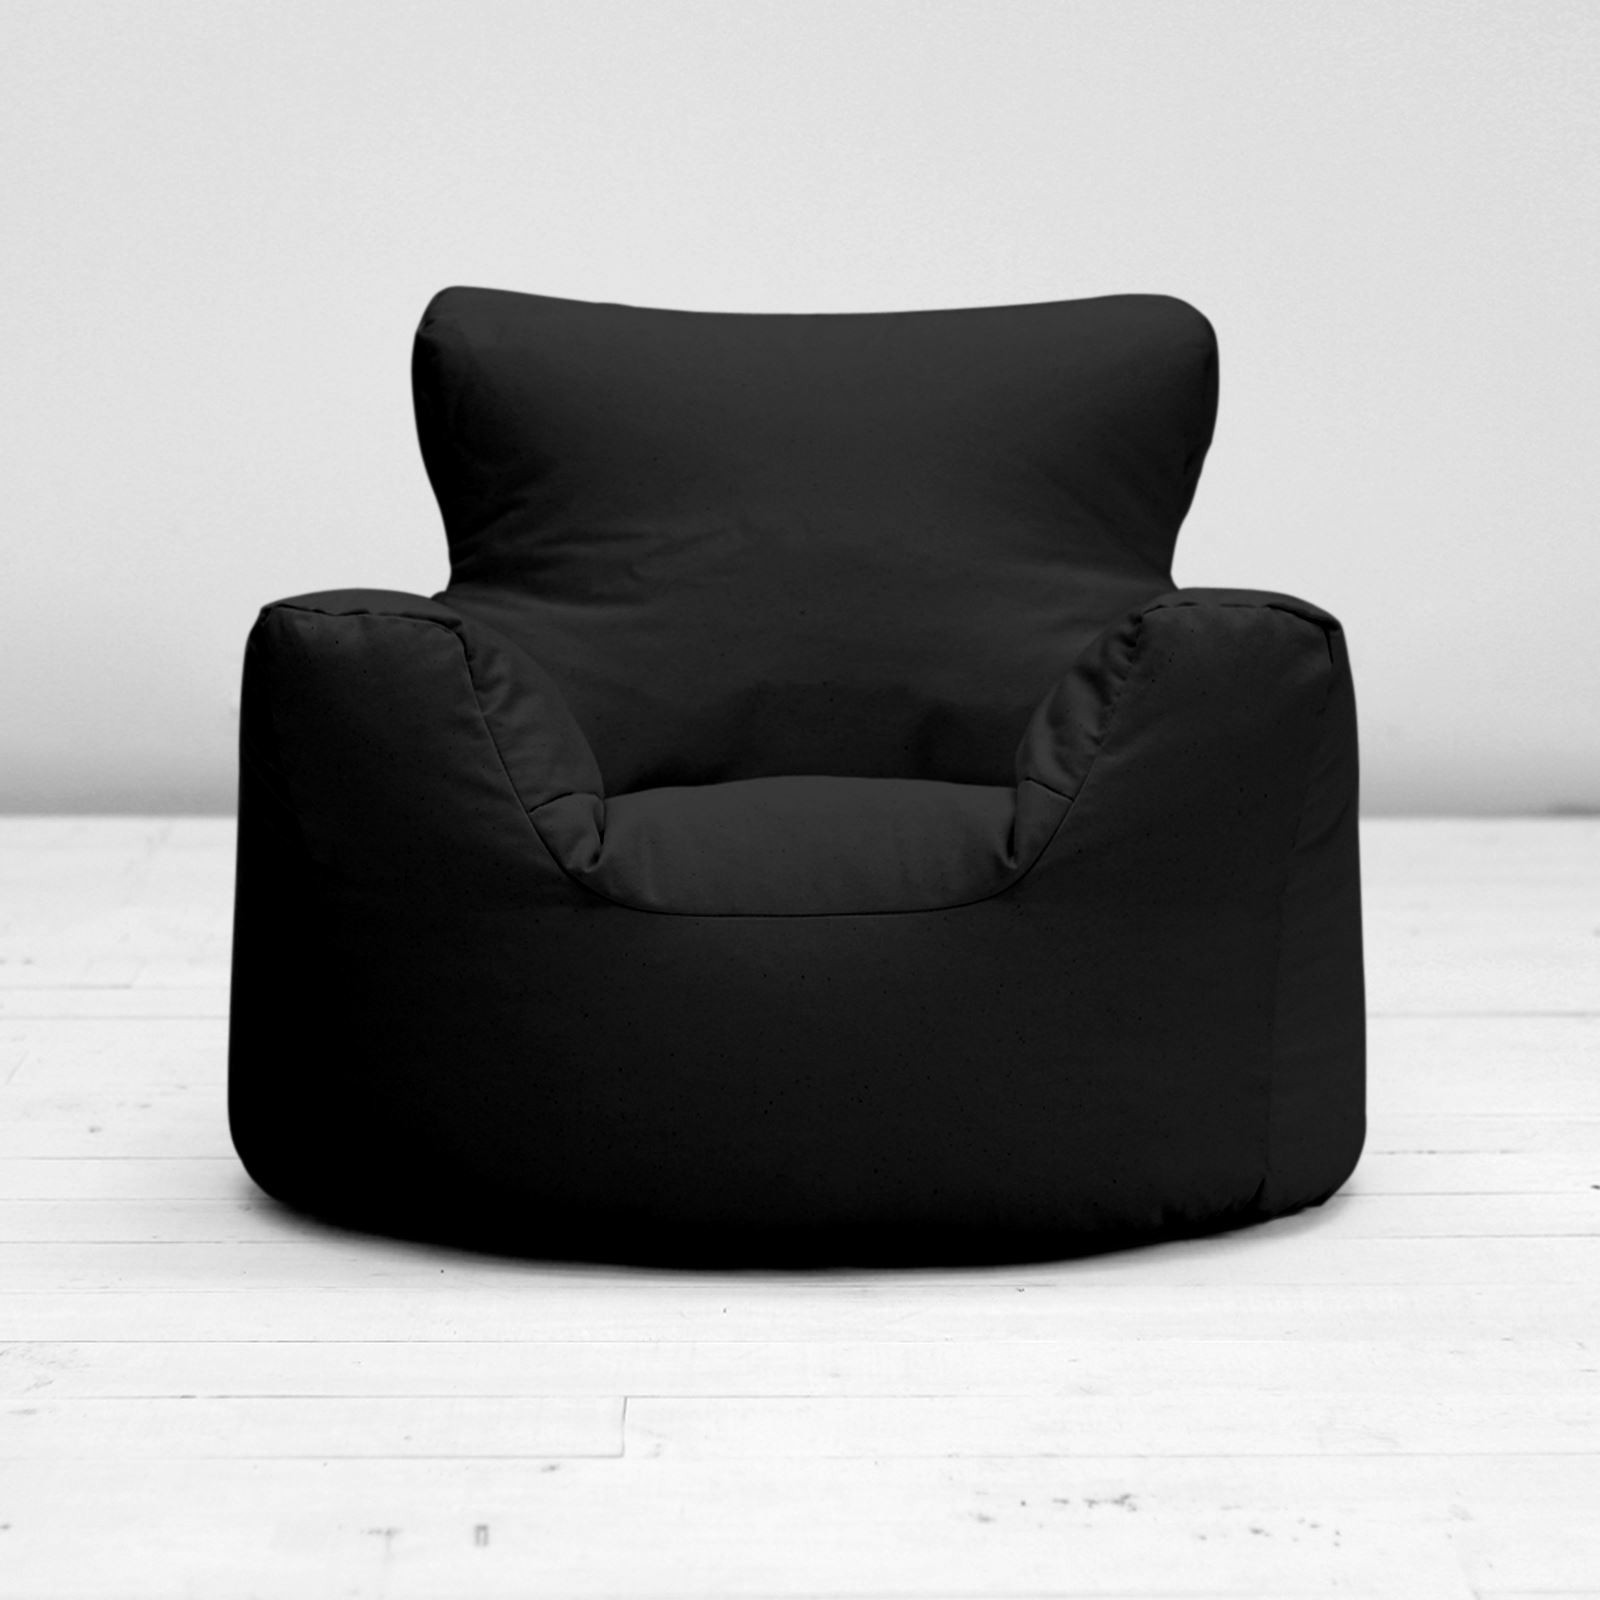 Childrens-Kids-Boys-Girls-100-Cotton-Chair-Seat-Beanbag-Bean-Bag-with-Filling